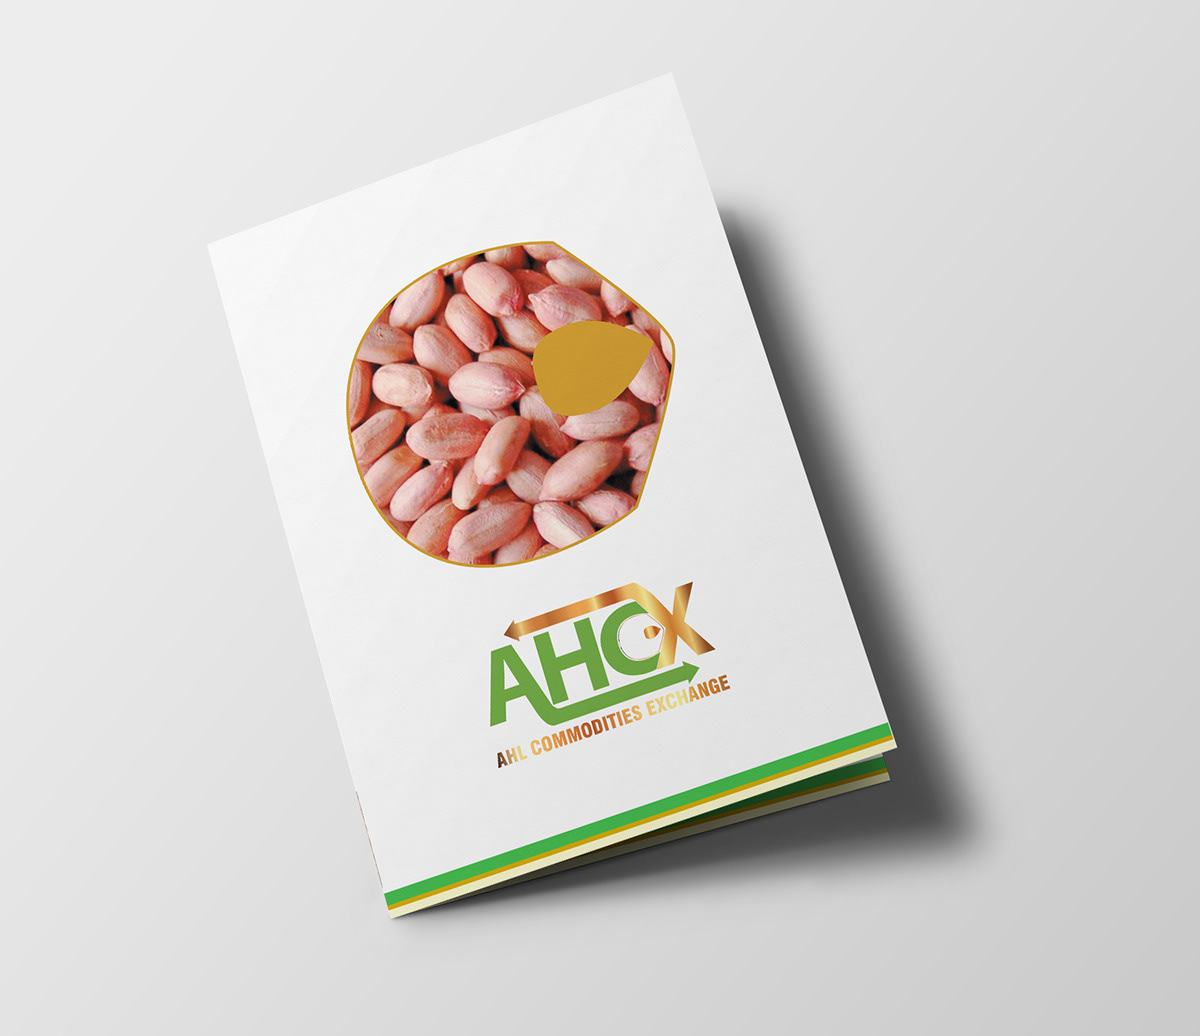 Identity design for AHL Commodities Exchange Limited